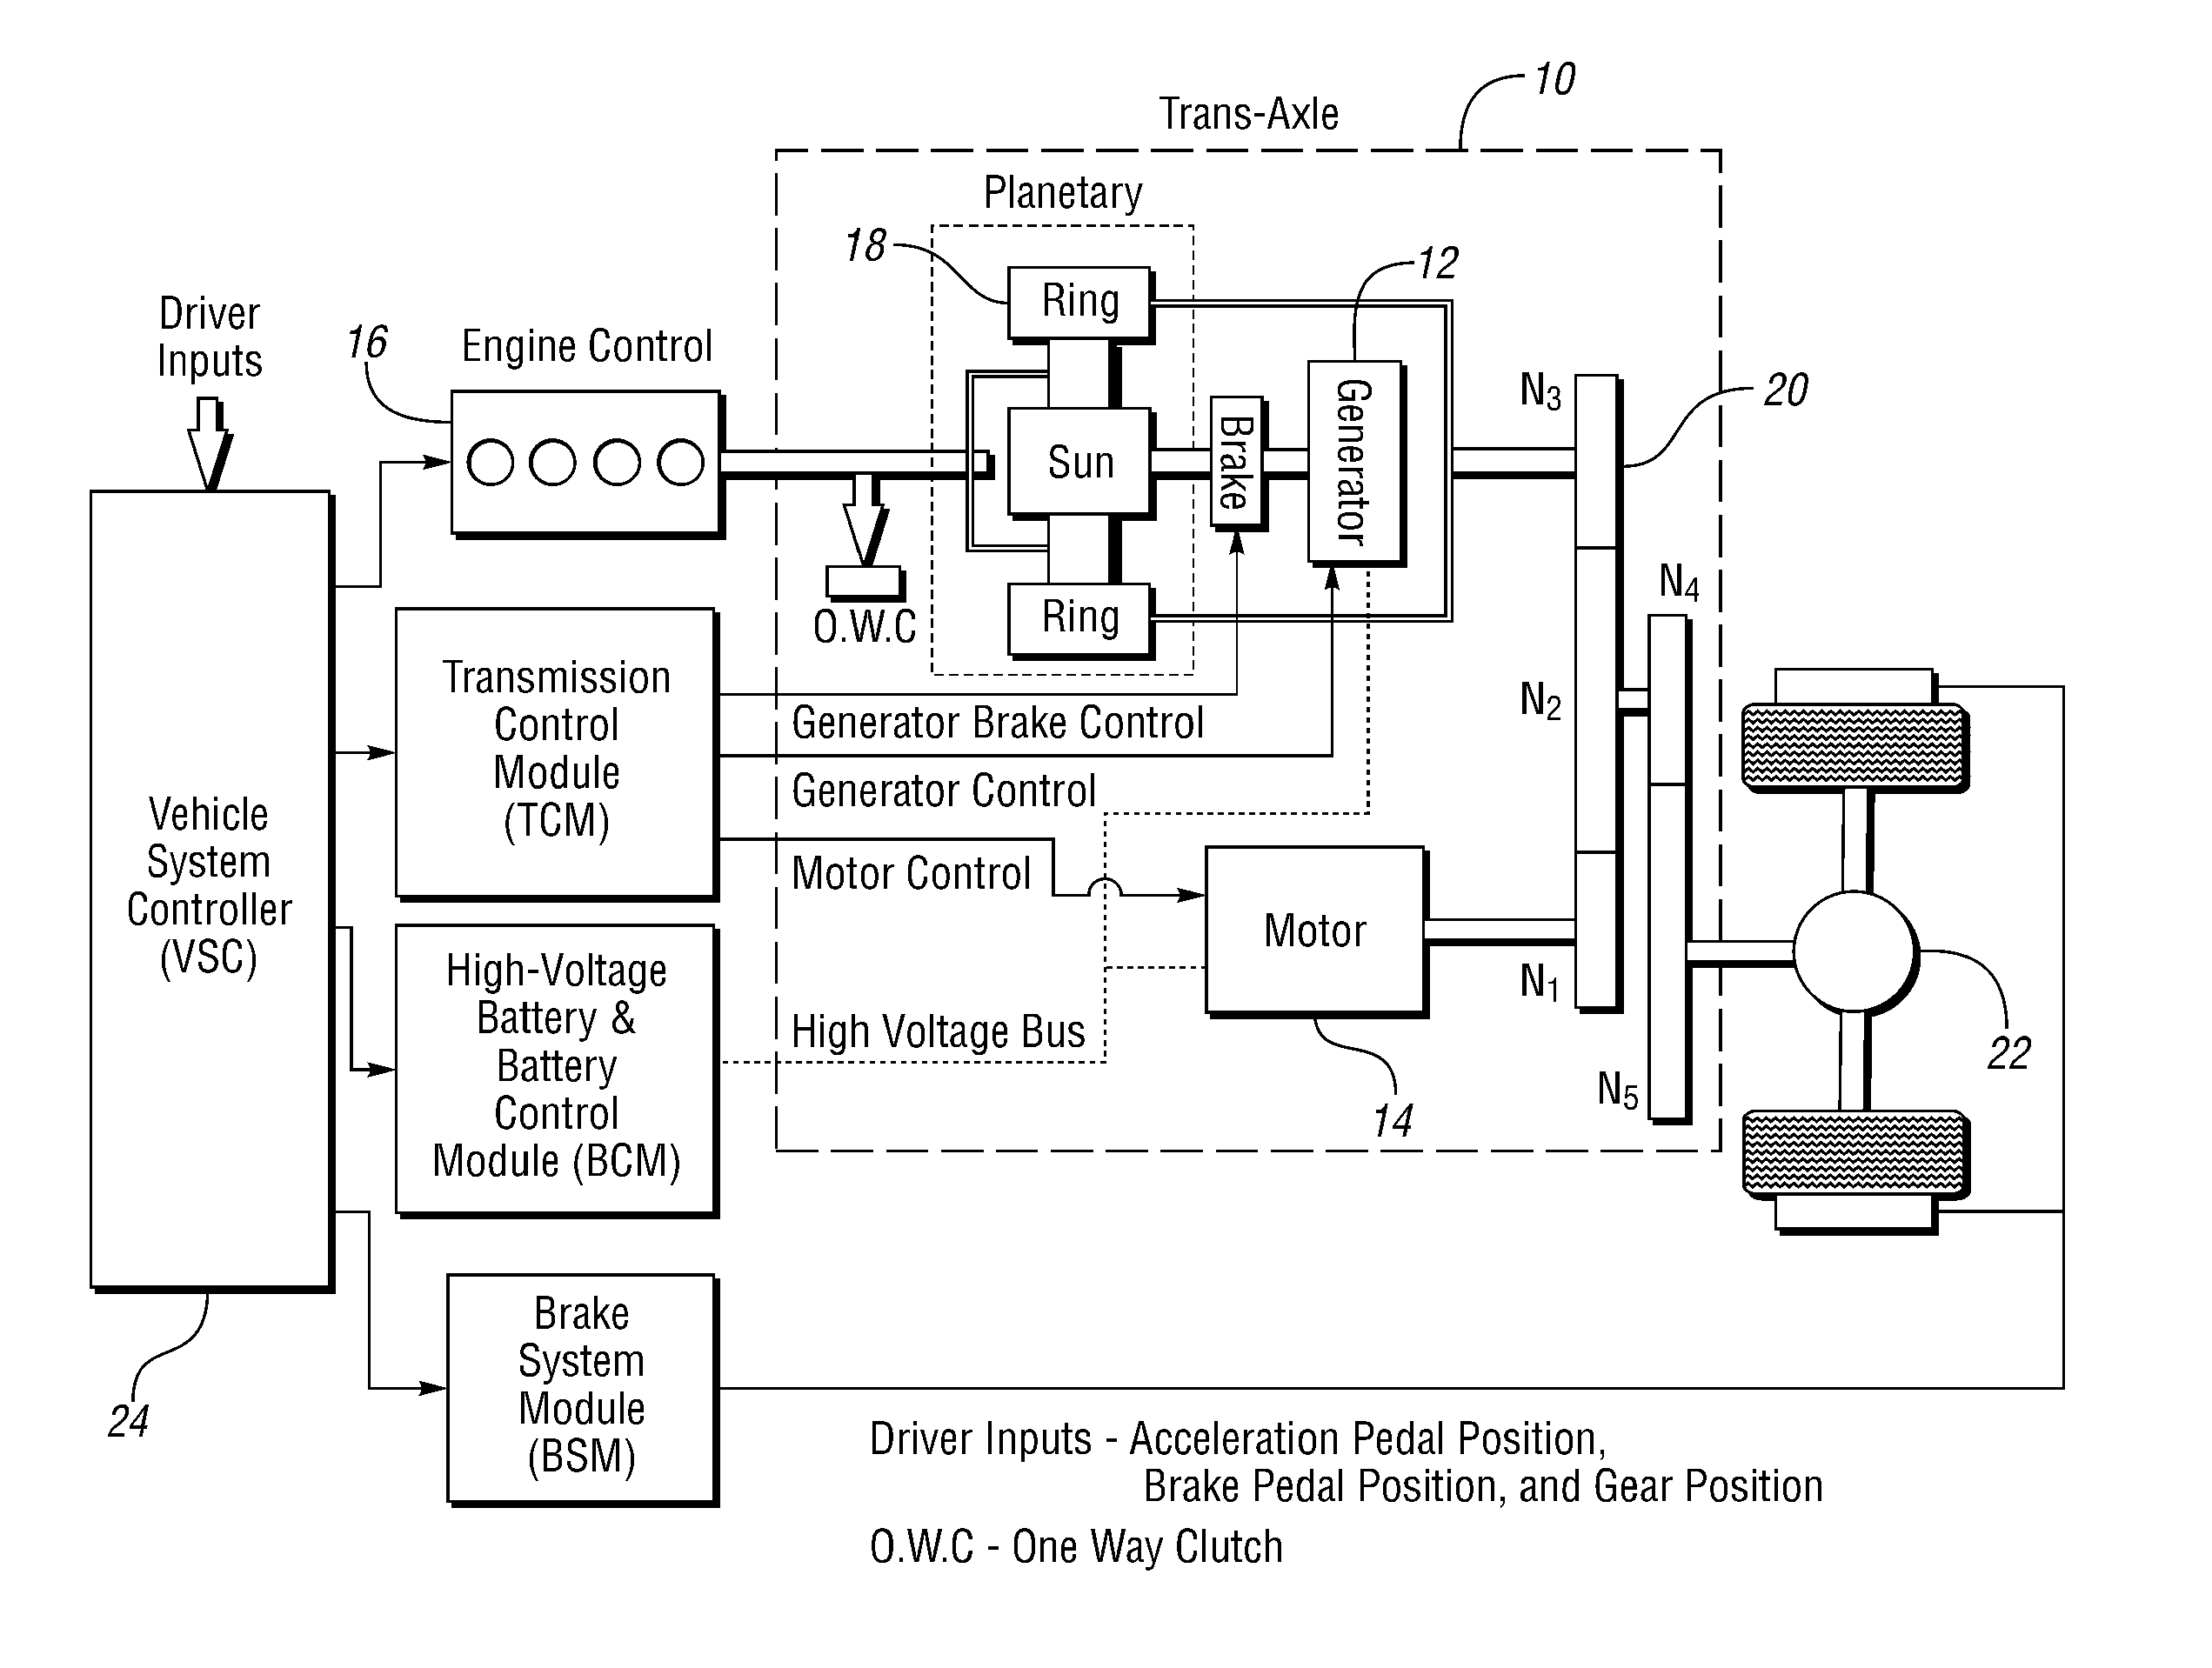 cummins wiring diagram gravity hot water j1939 wrg 7799 isx diagramus08190319 20120529 d00000 diagrams freightliner fl70 the